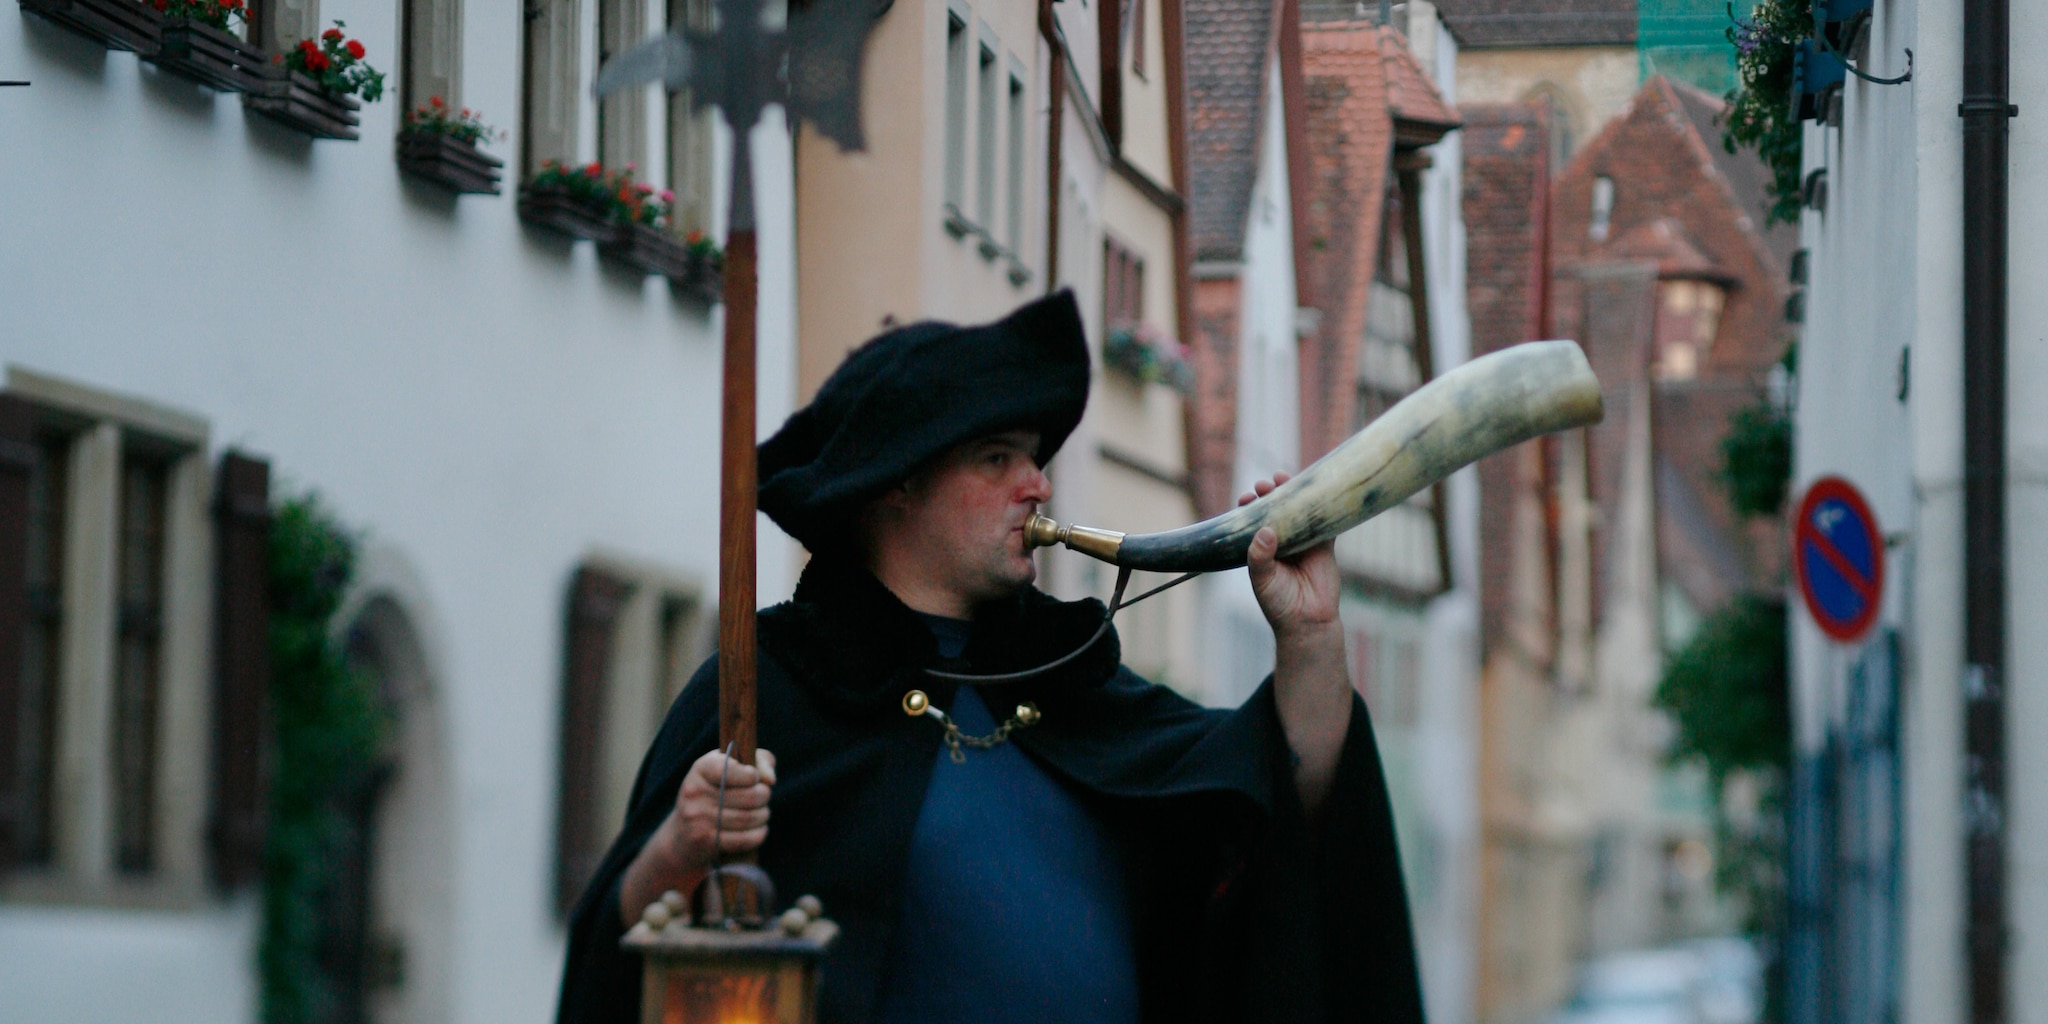 A night watchman wearing a three cornered hat and a cloak carries a lantern and blows a carved horn